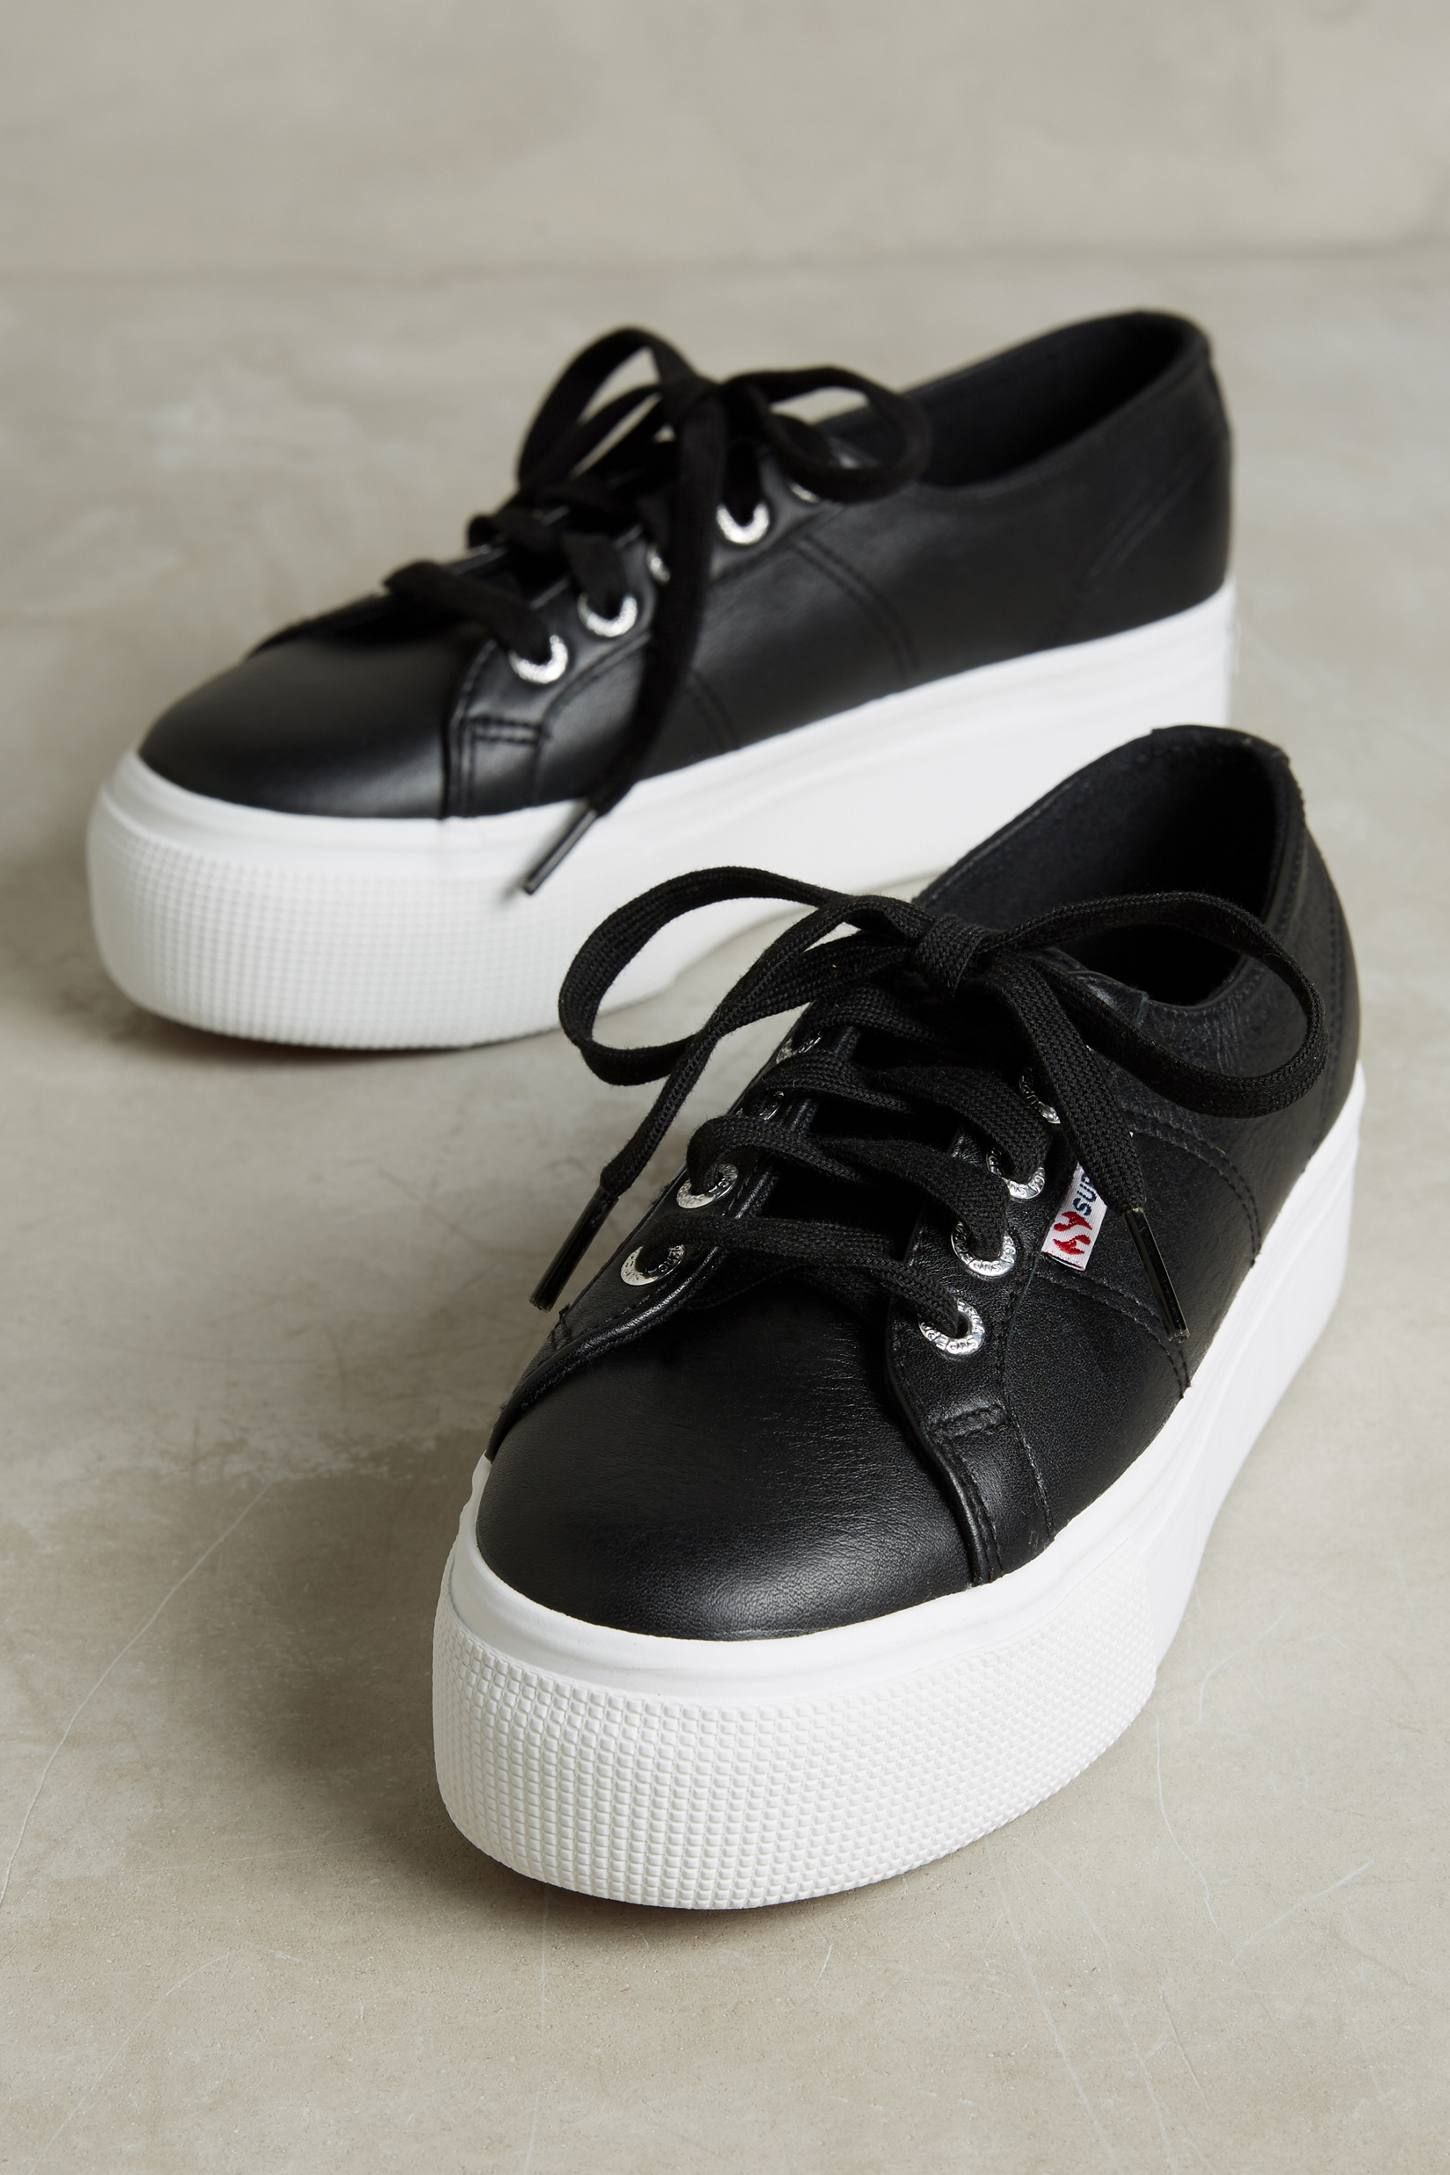 38c036d29737 Slide View  1  Superga Leather Platform Sneakers